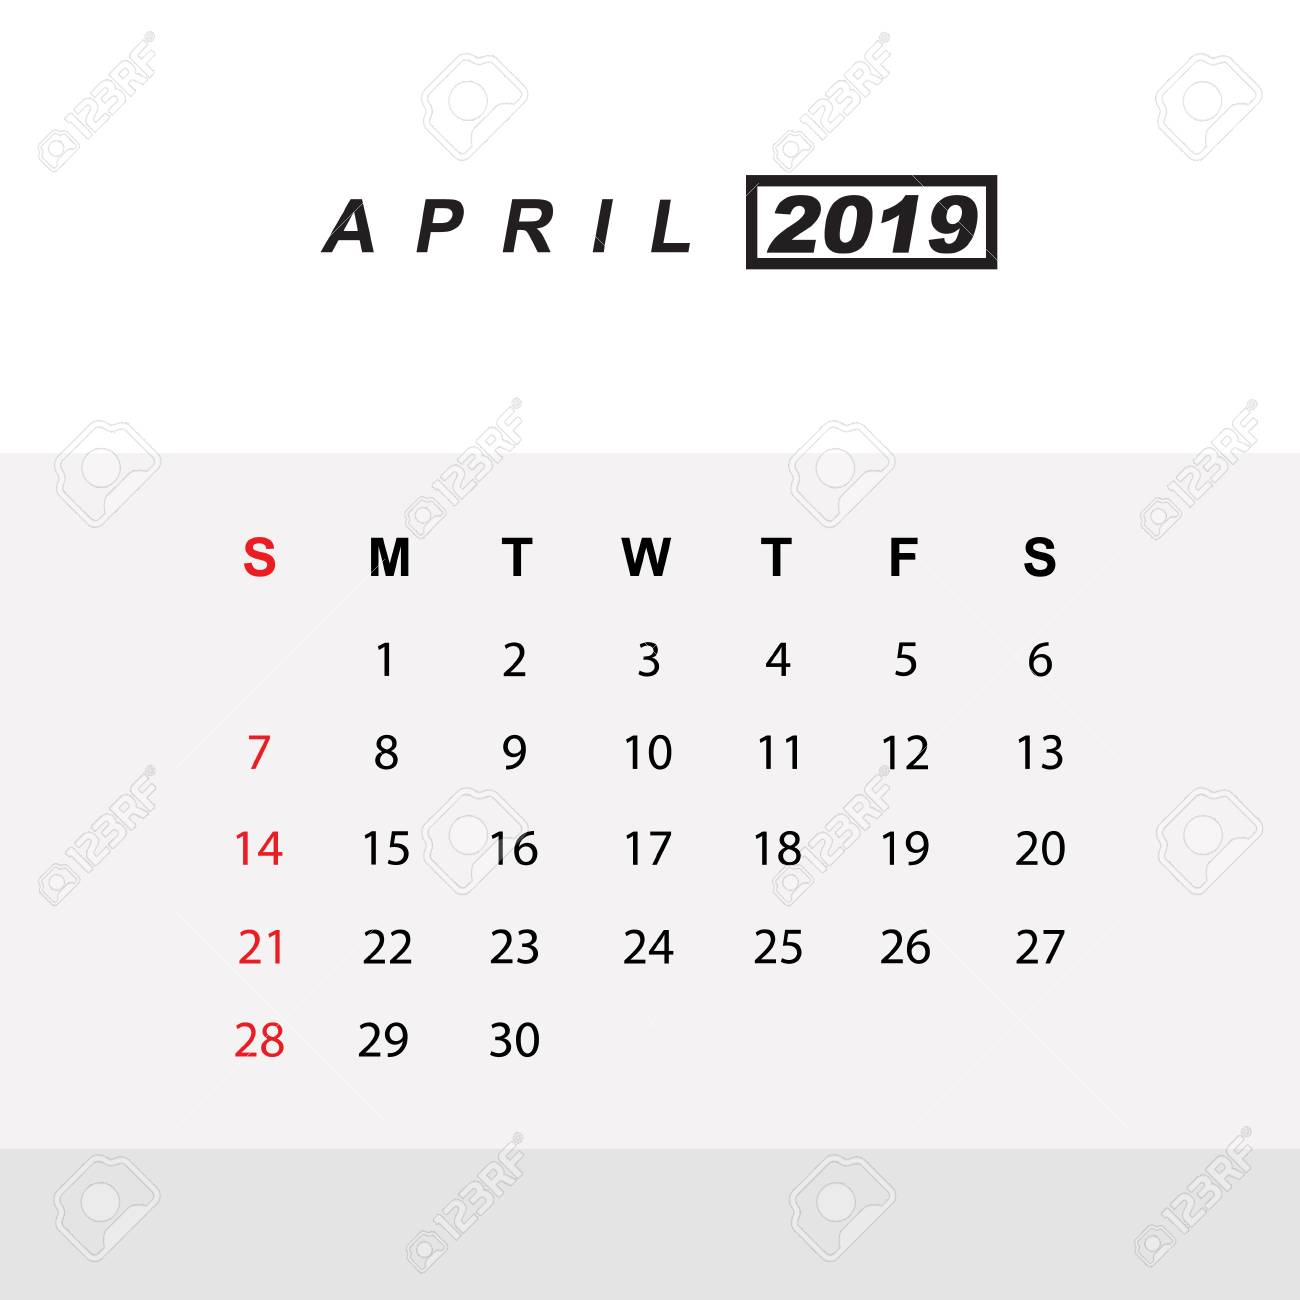 Template of calendar for April 2019.